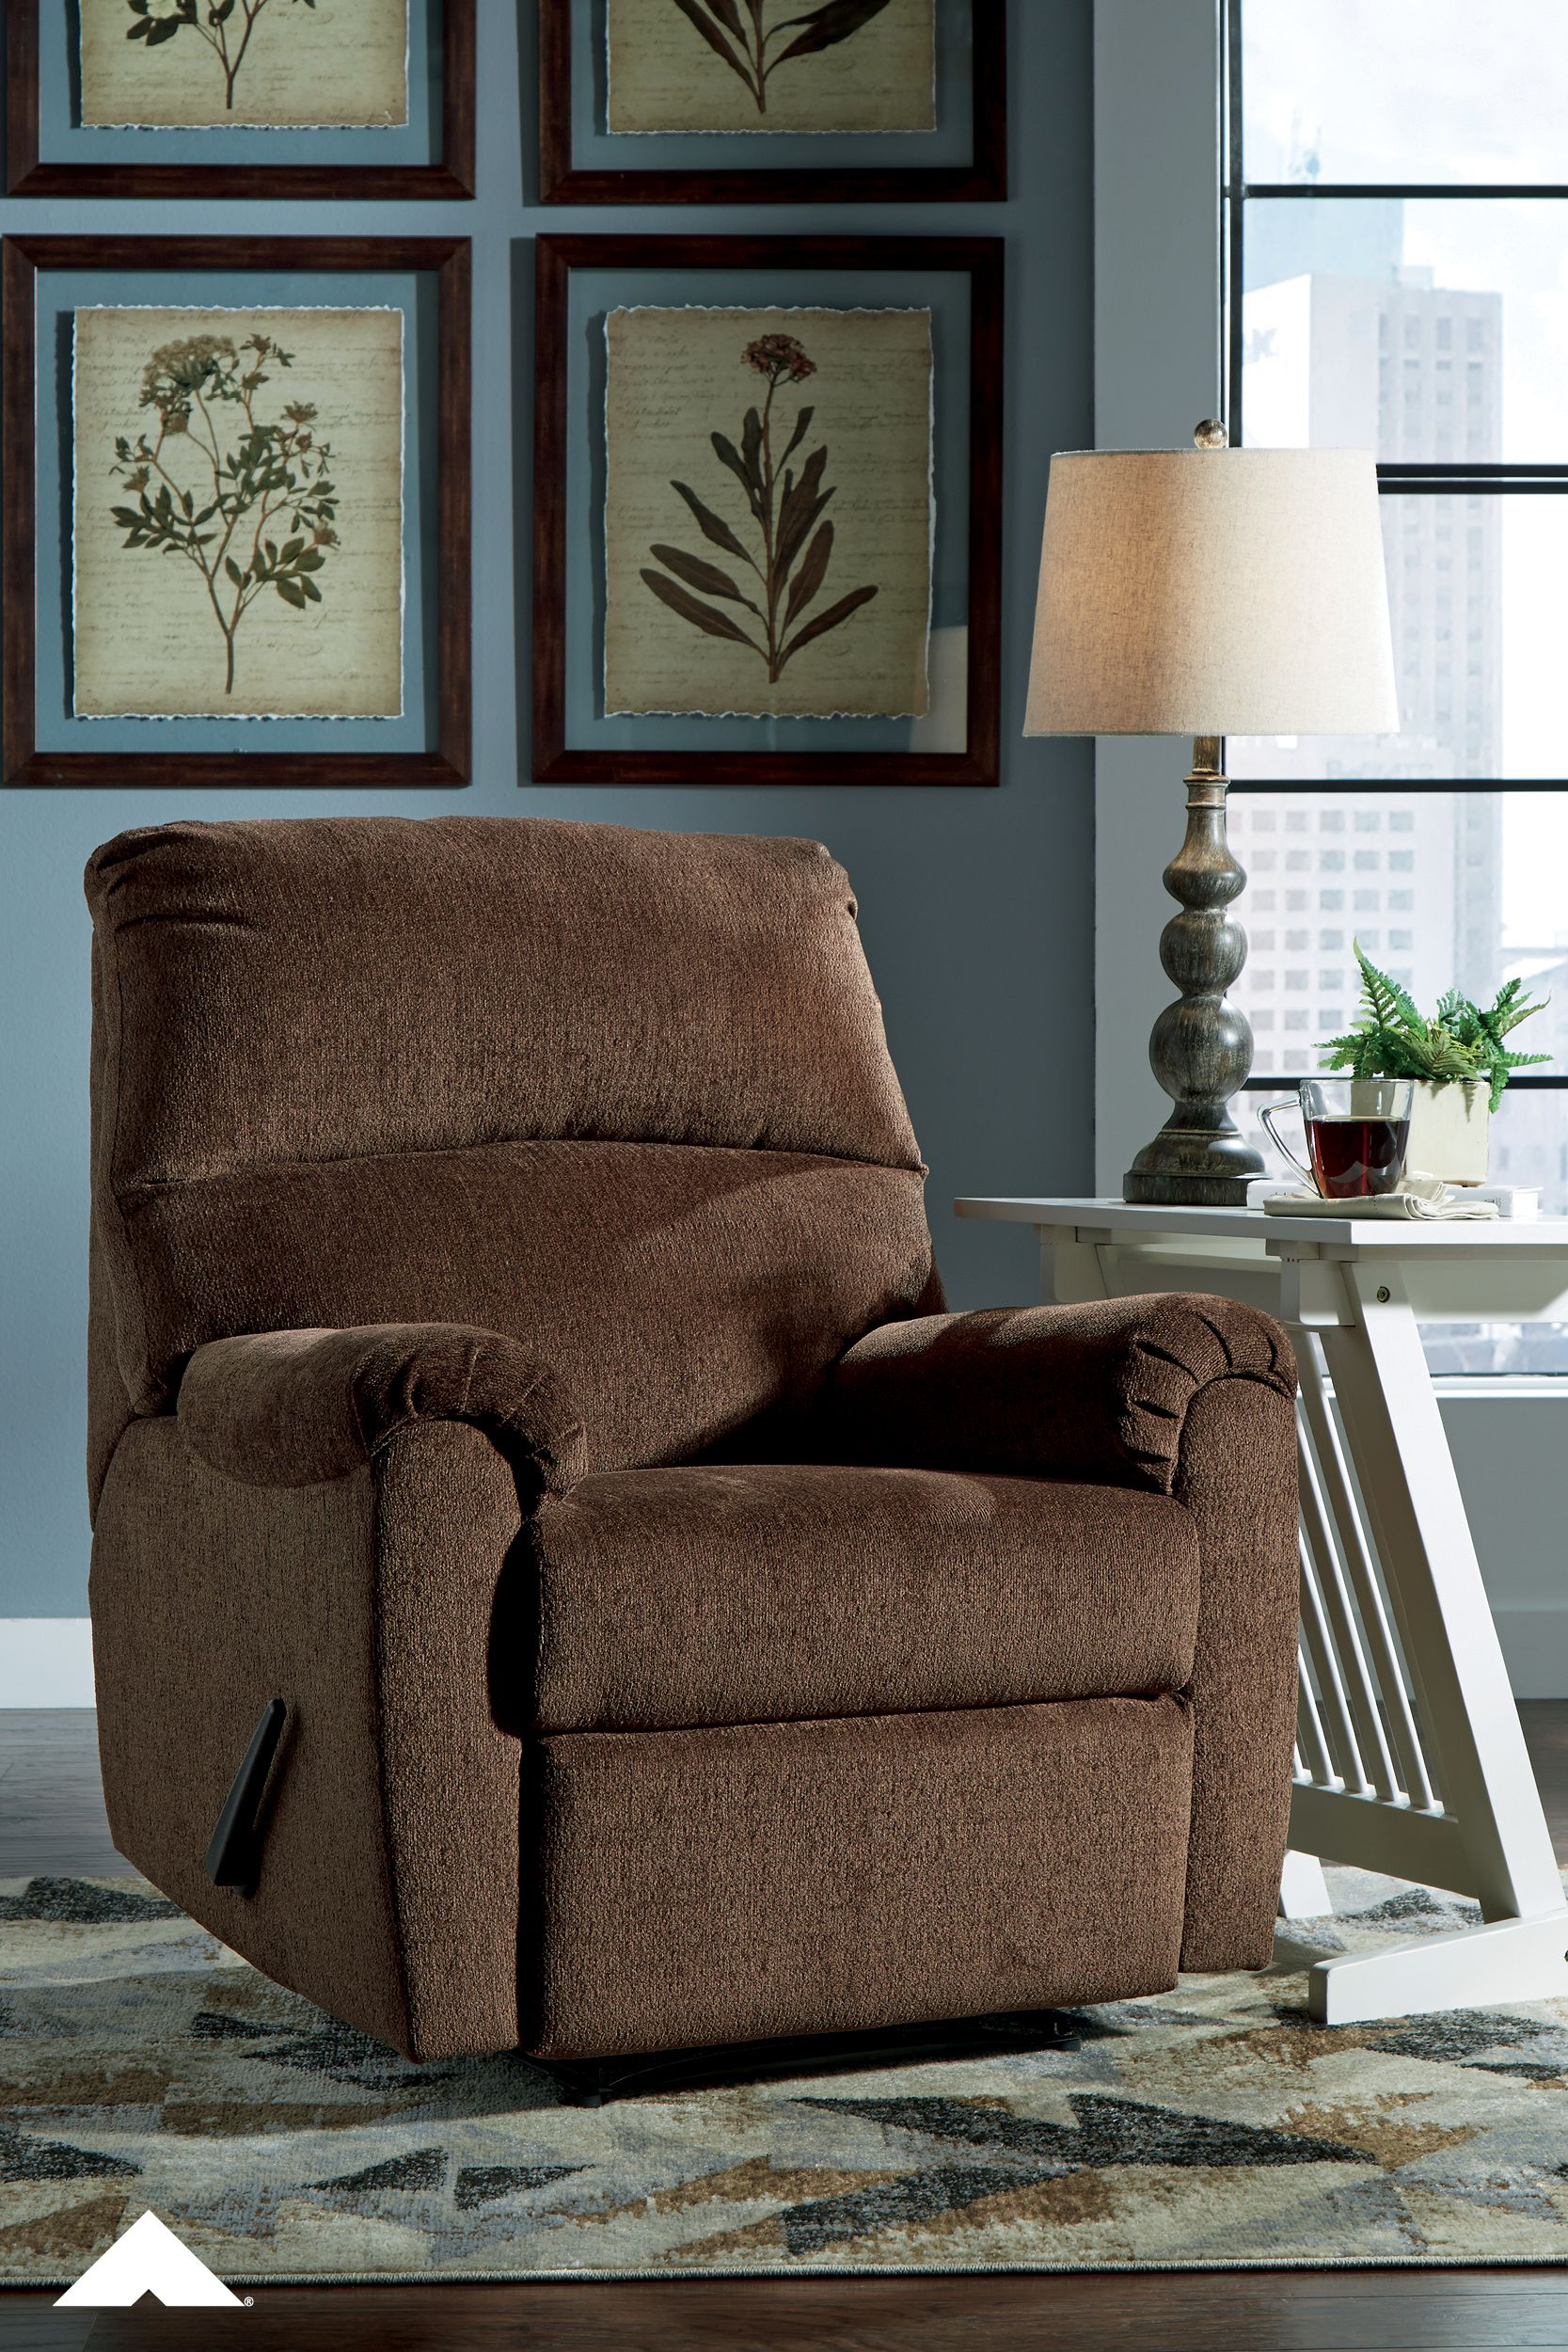 Nerviano Chocolate Zero Wall Recliner By Ashley Furniture Indulge In Comfort While Saving On Space With The Nerviano Zero Wal Ashley Furniture Furniture Room